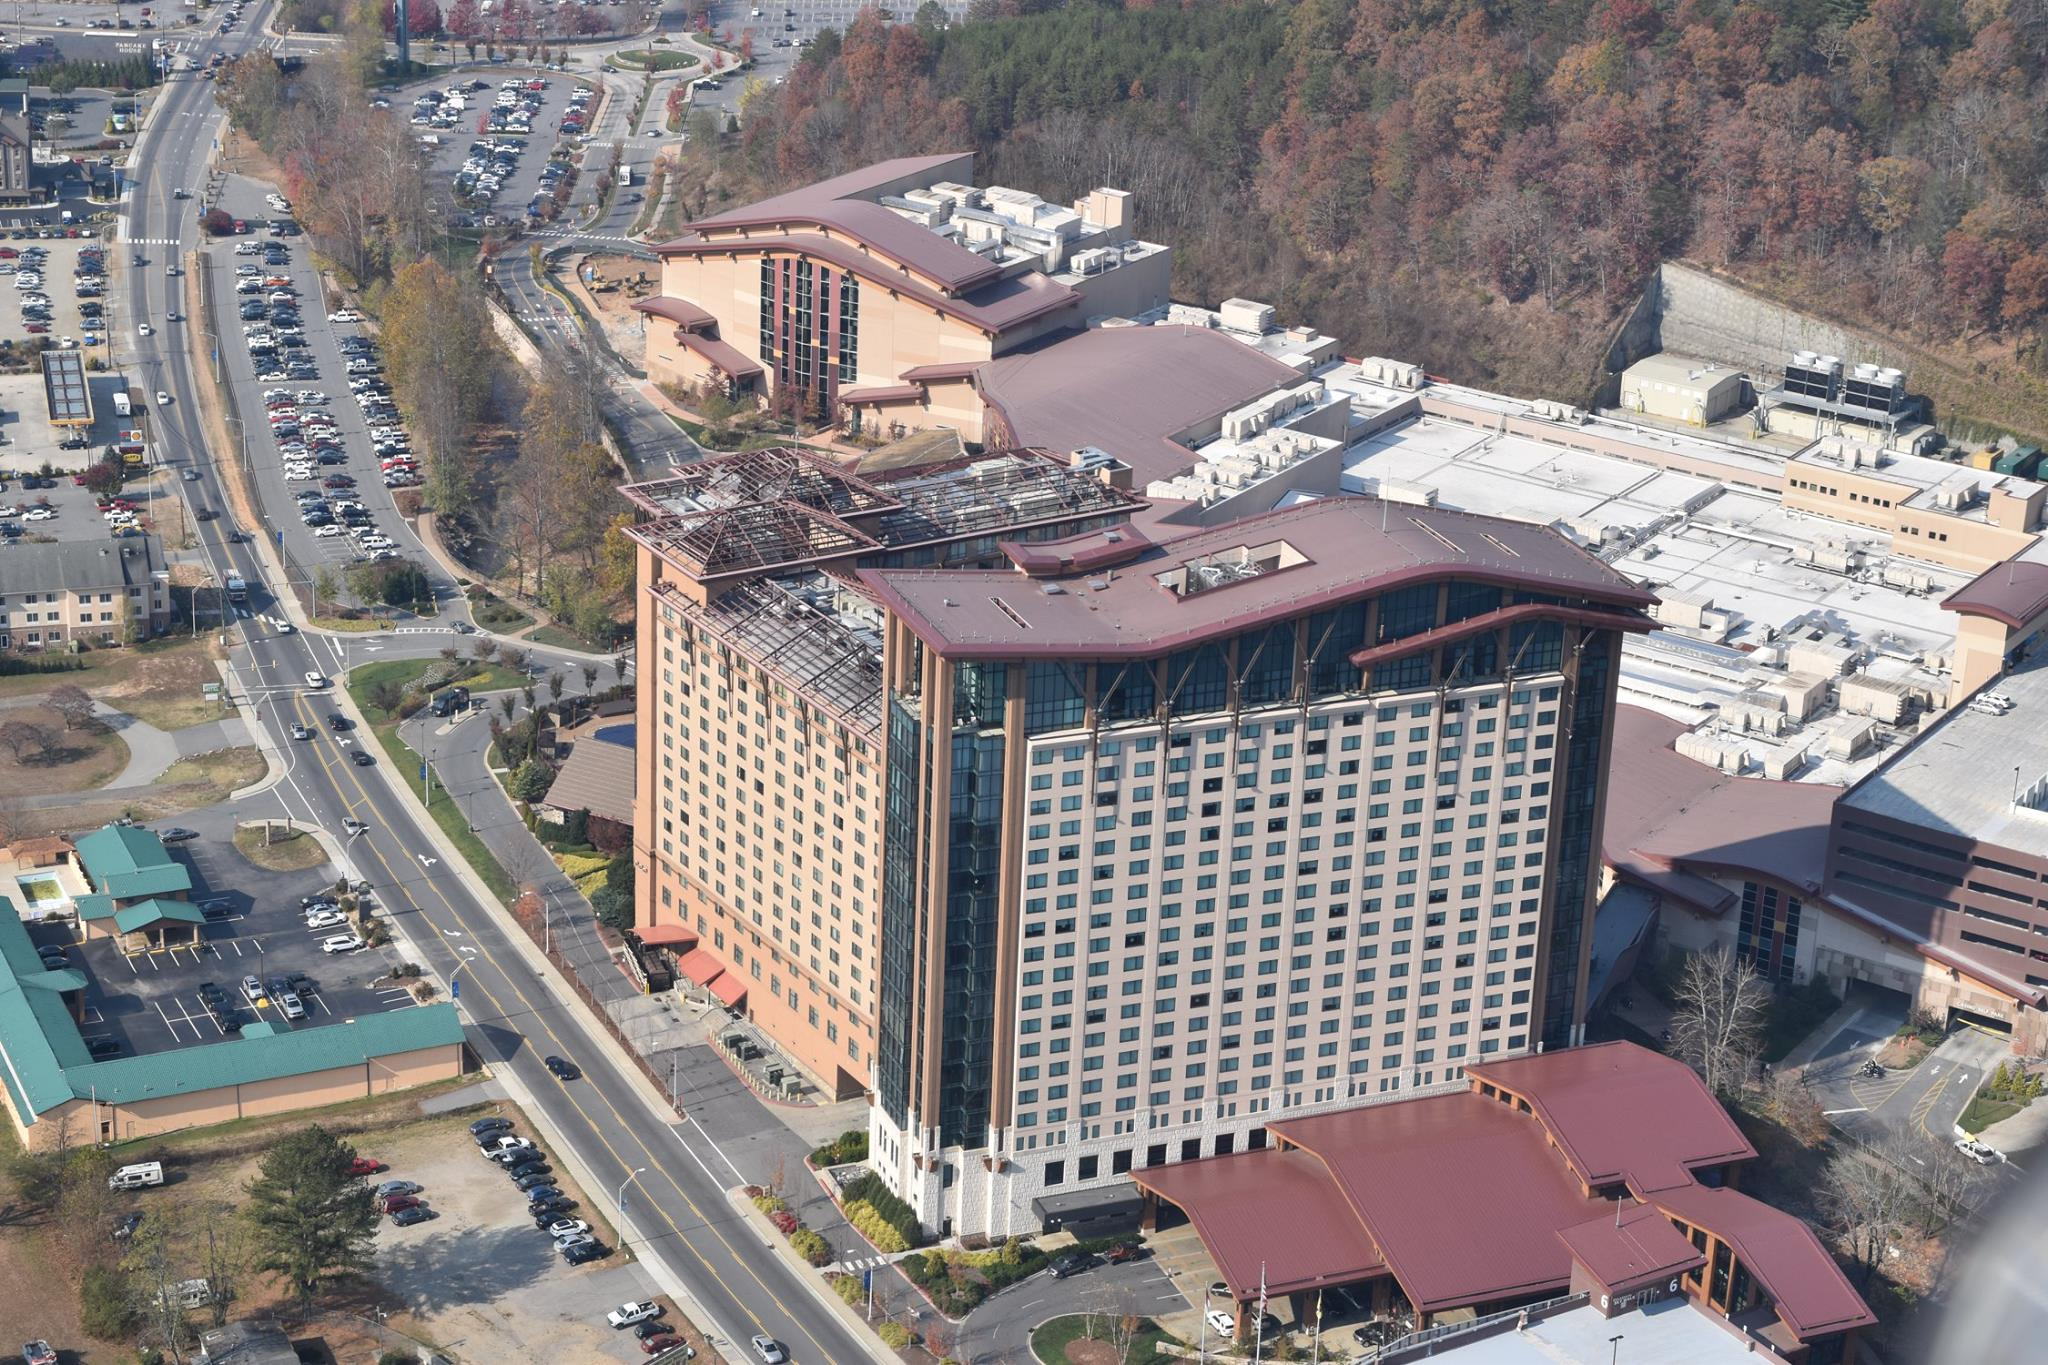 Eastern Cherokees approve $200M expansion of flagship casino